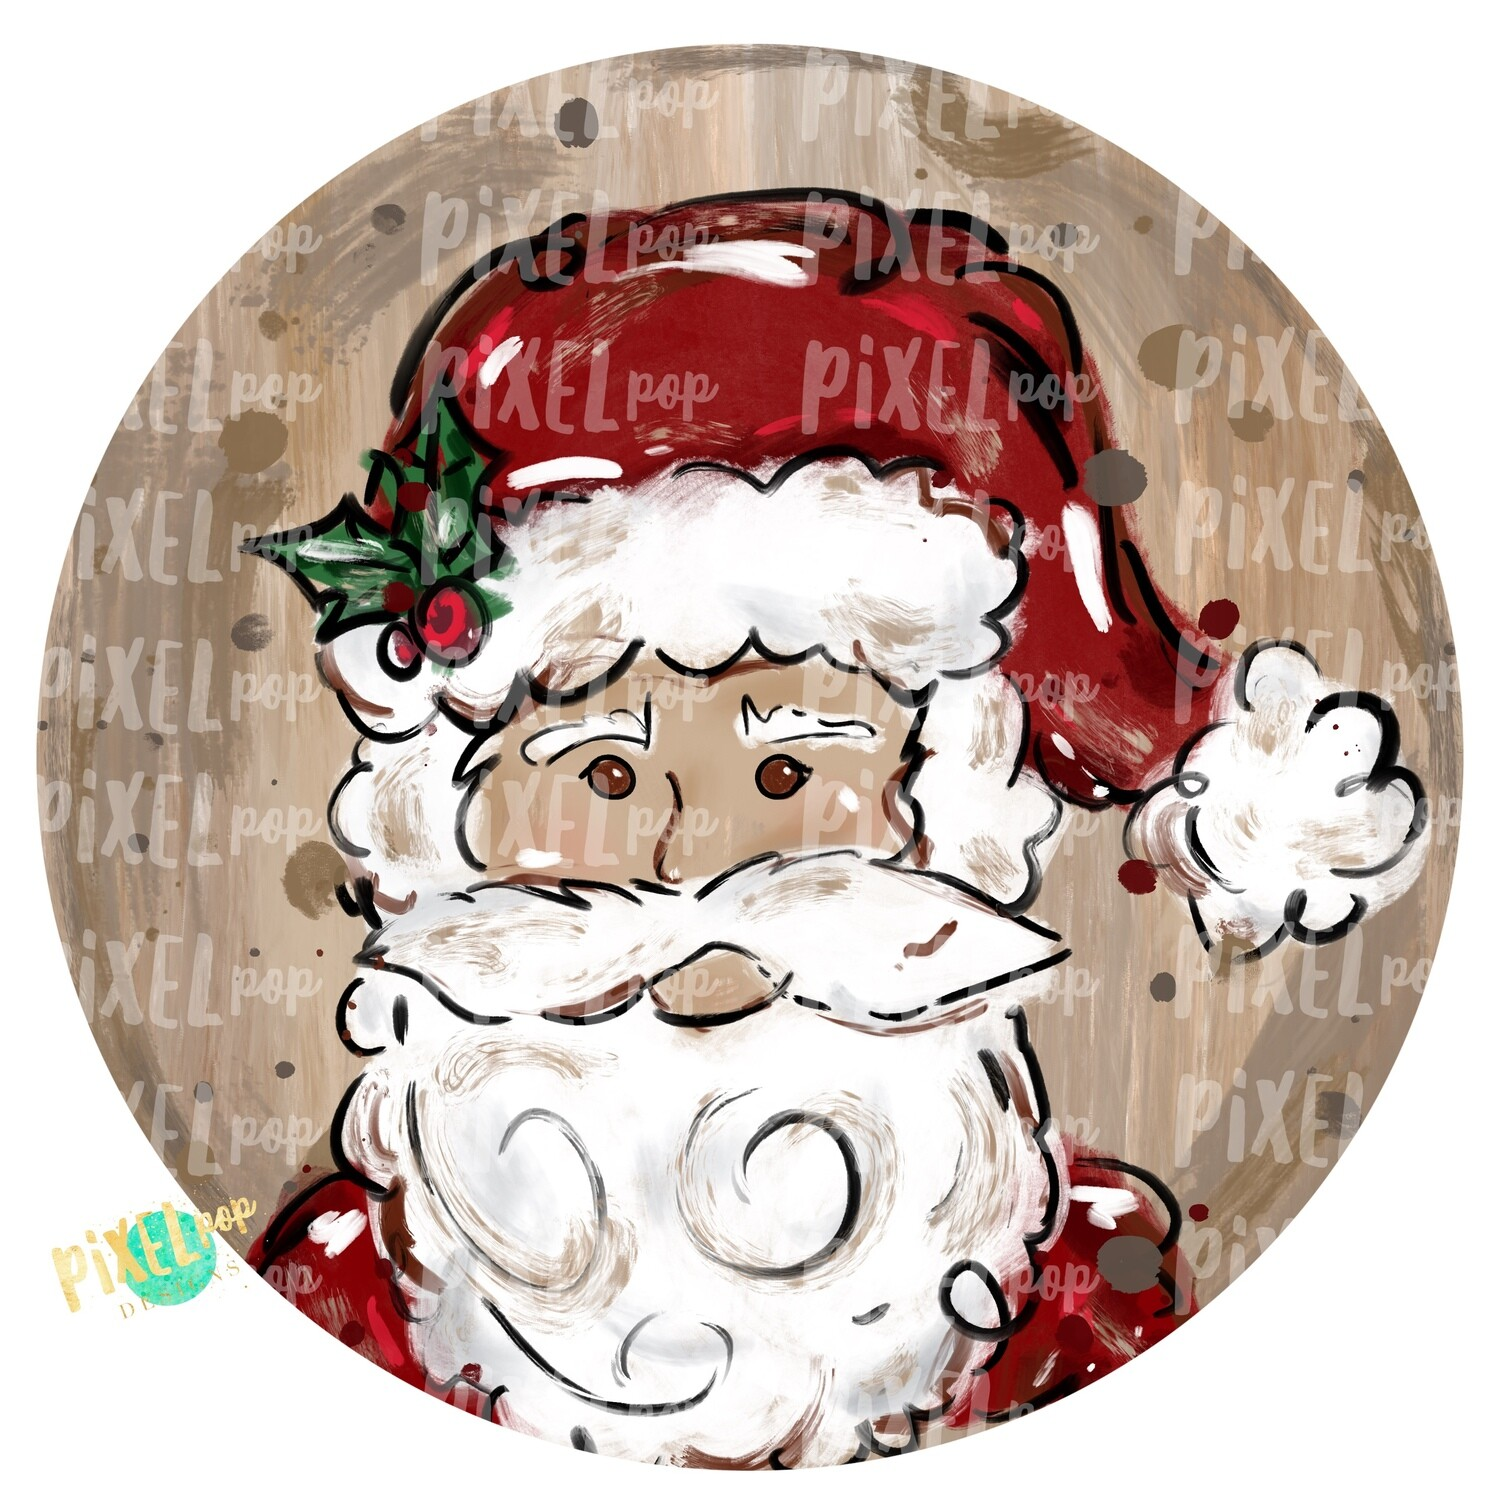 Texture Painted Santa Claus in Circle PNG | Christmas Sublimation | Santa | Santa Art | Christmas | Digital Download | Printable Artwork